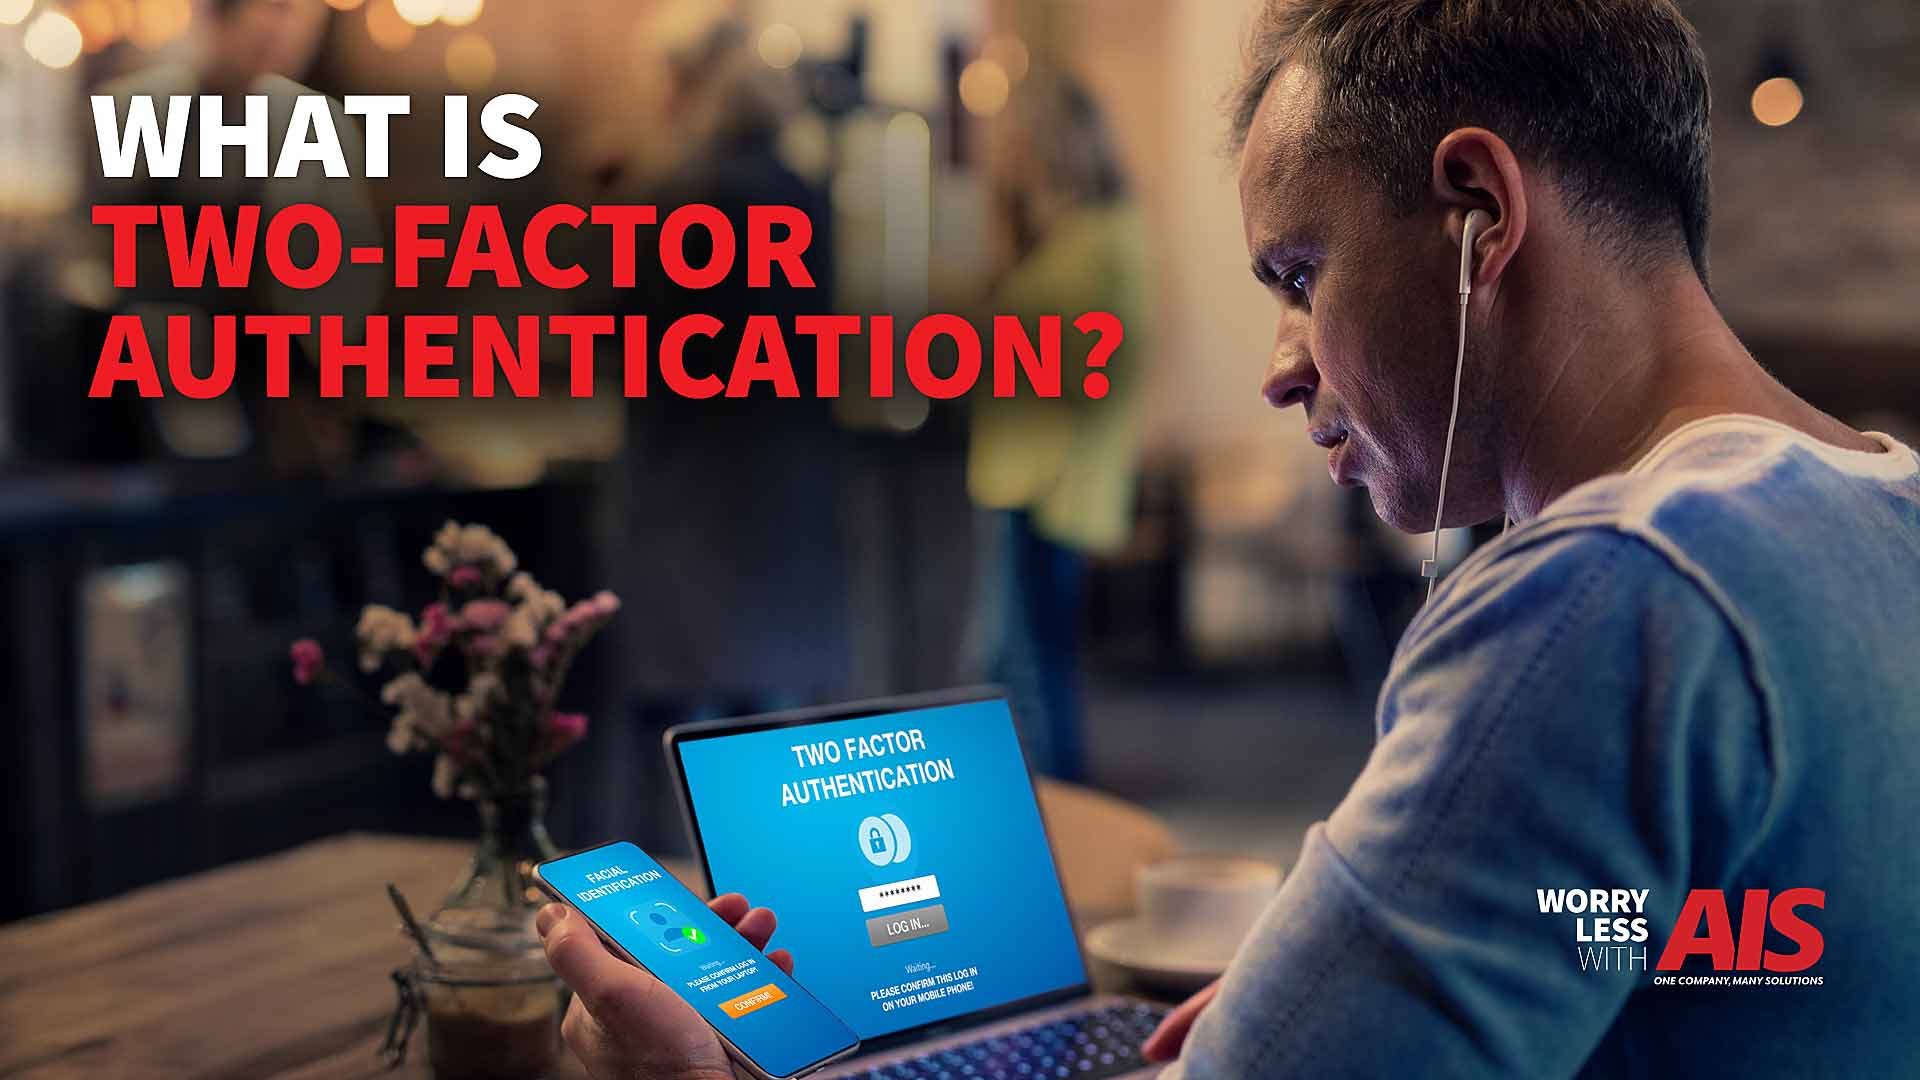 Two-Factor Authentication (2FA): What Is It, and Do You Need It?